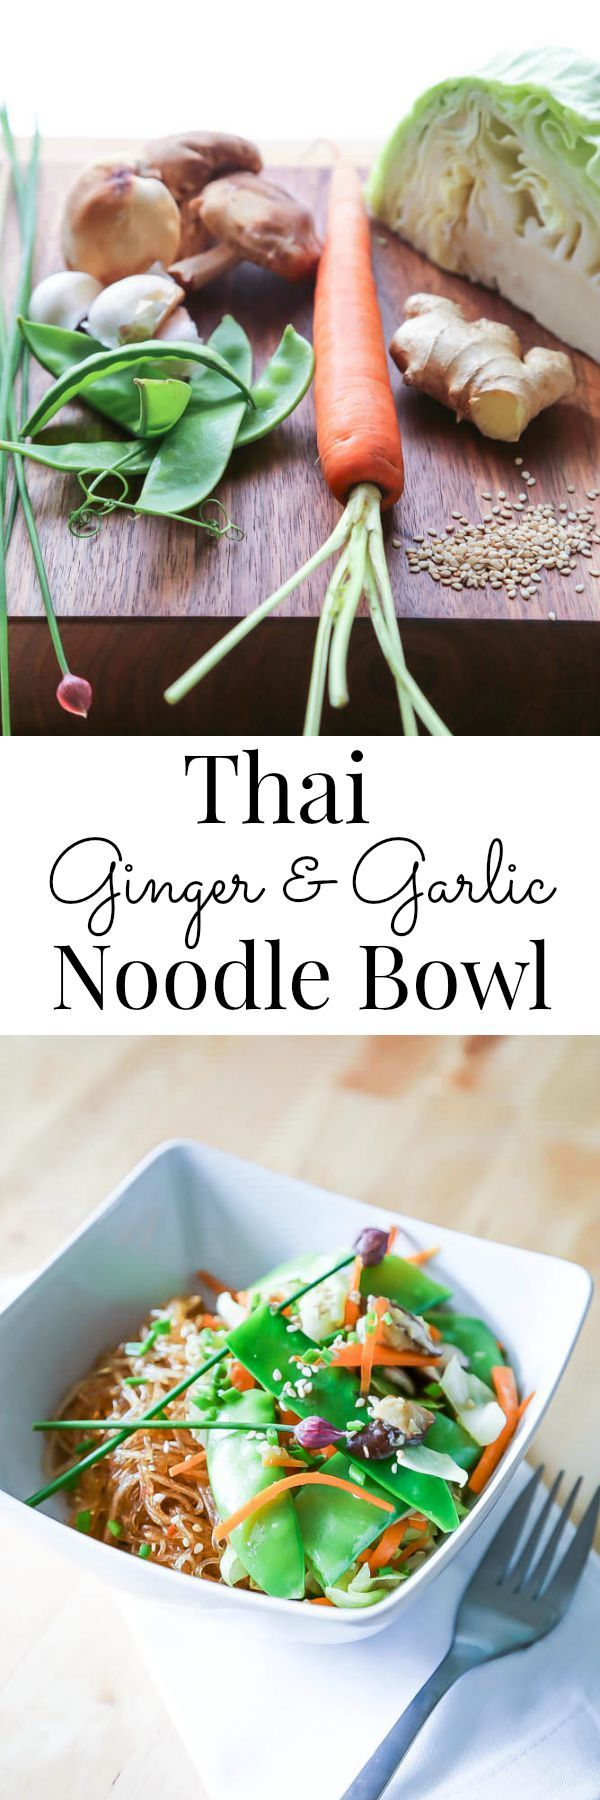 Hearty and nourishing, this Noodle Bowl is quick and easy: #Vegan #Vegetarain| Vanilla And Bean